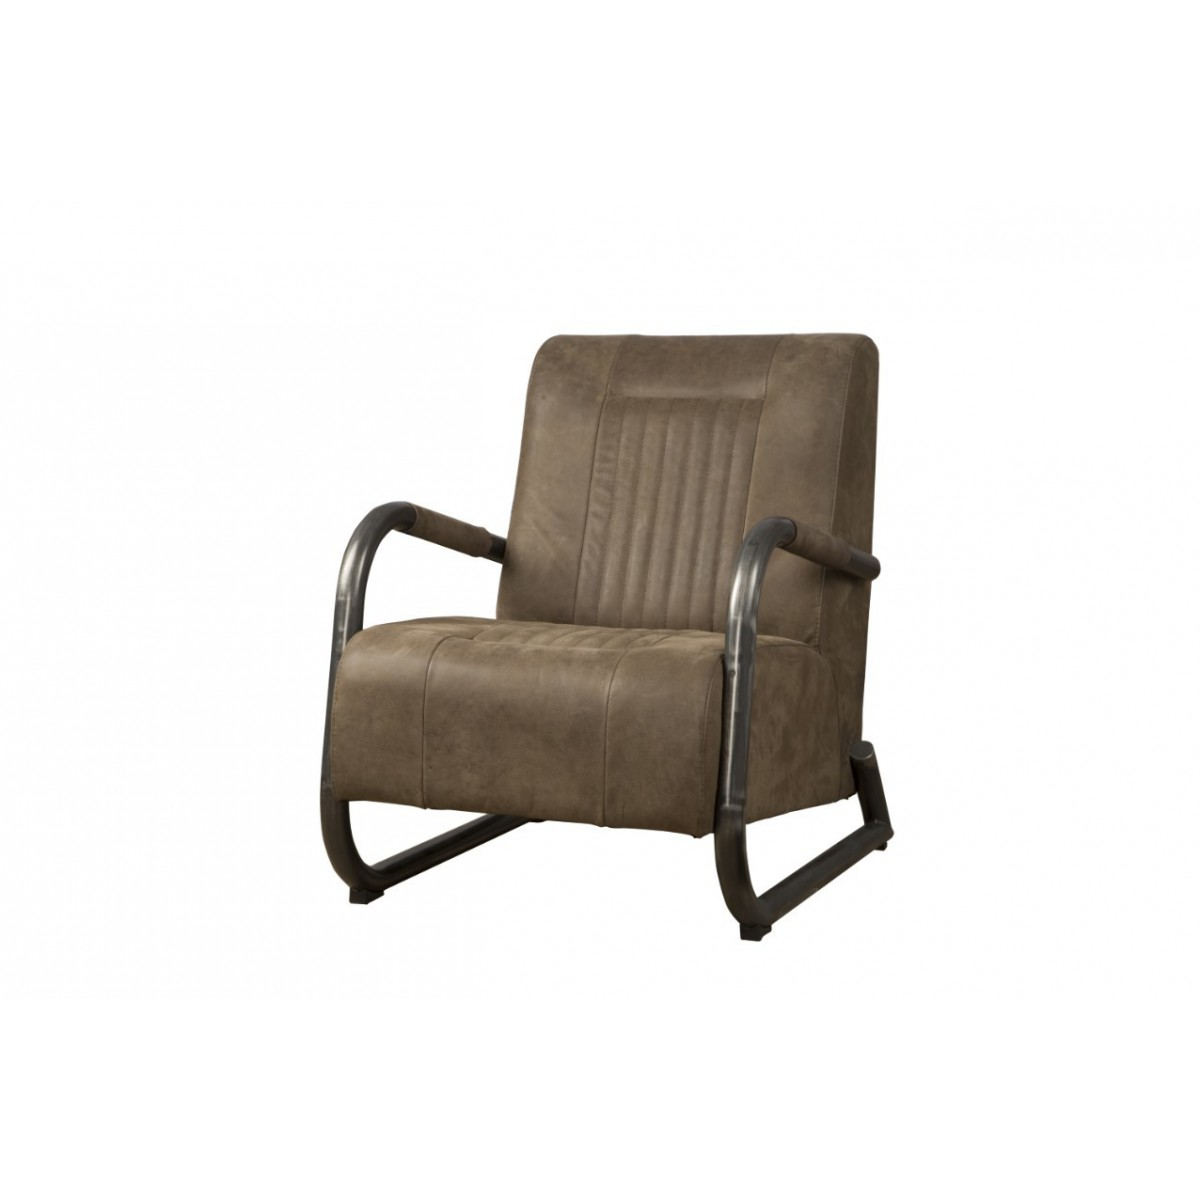 barn-coffeechair-fauteuil-vintage-leer-taupe-lm0014